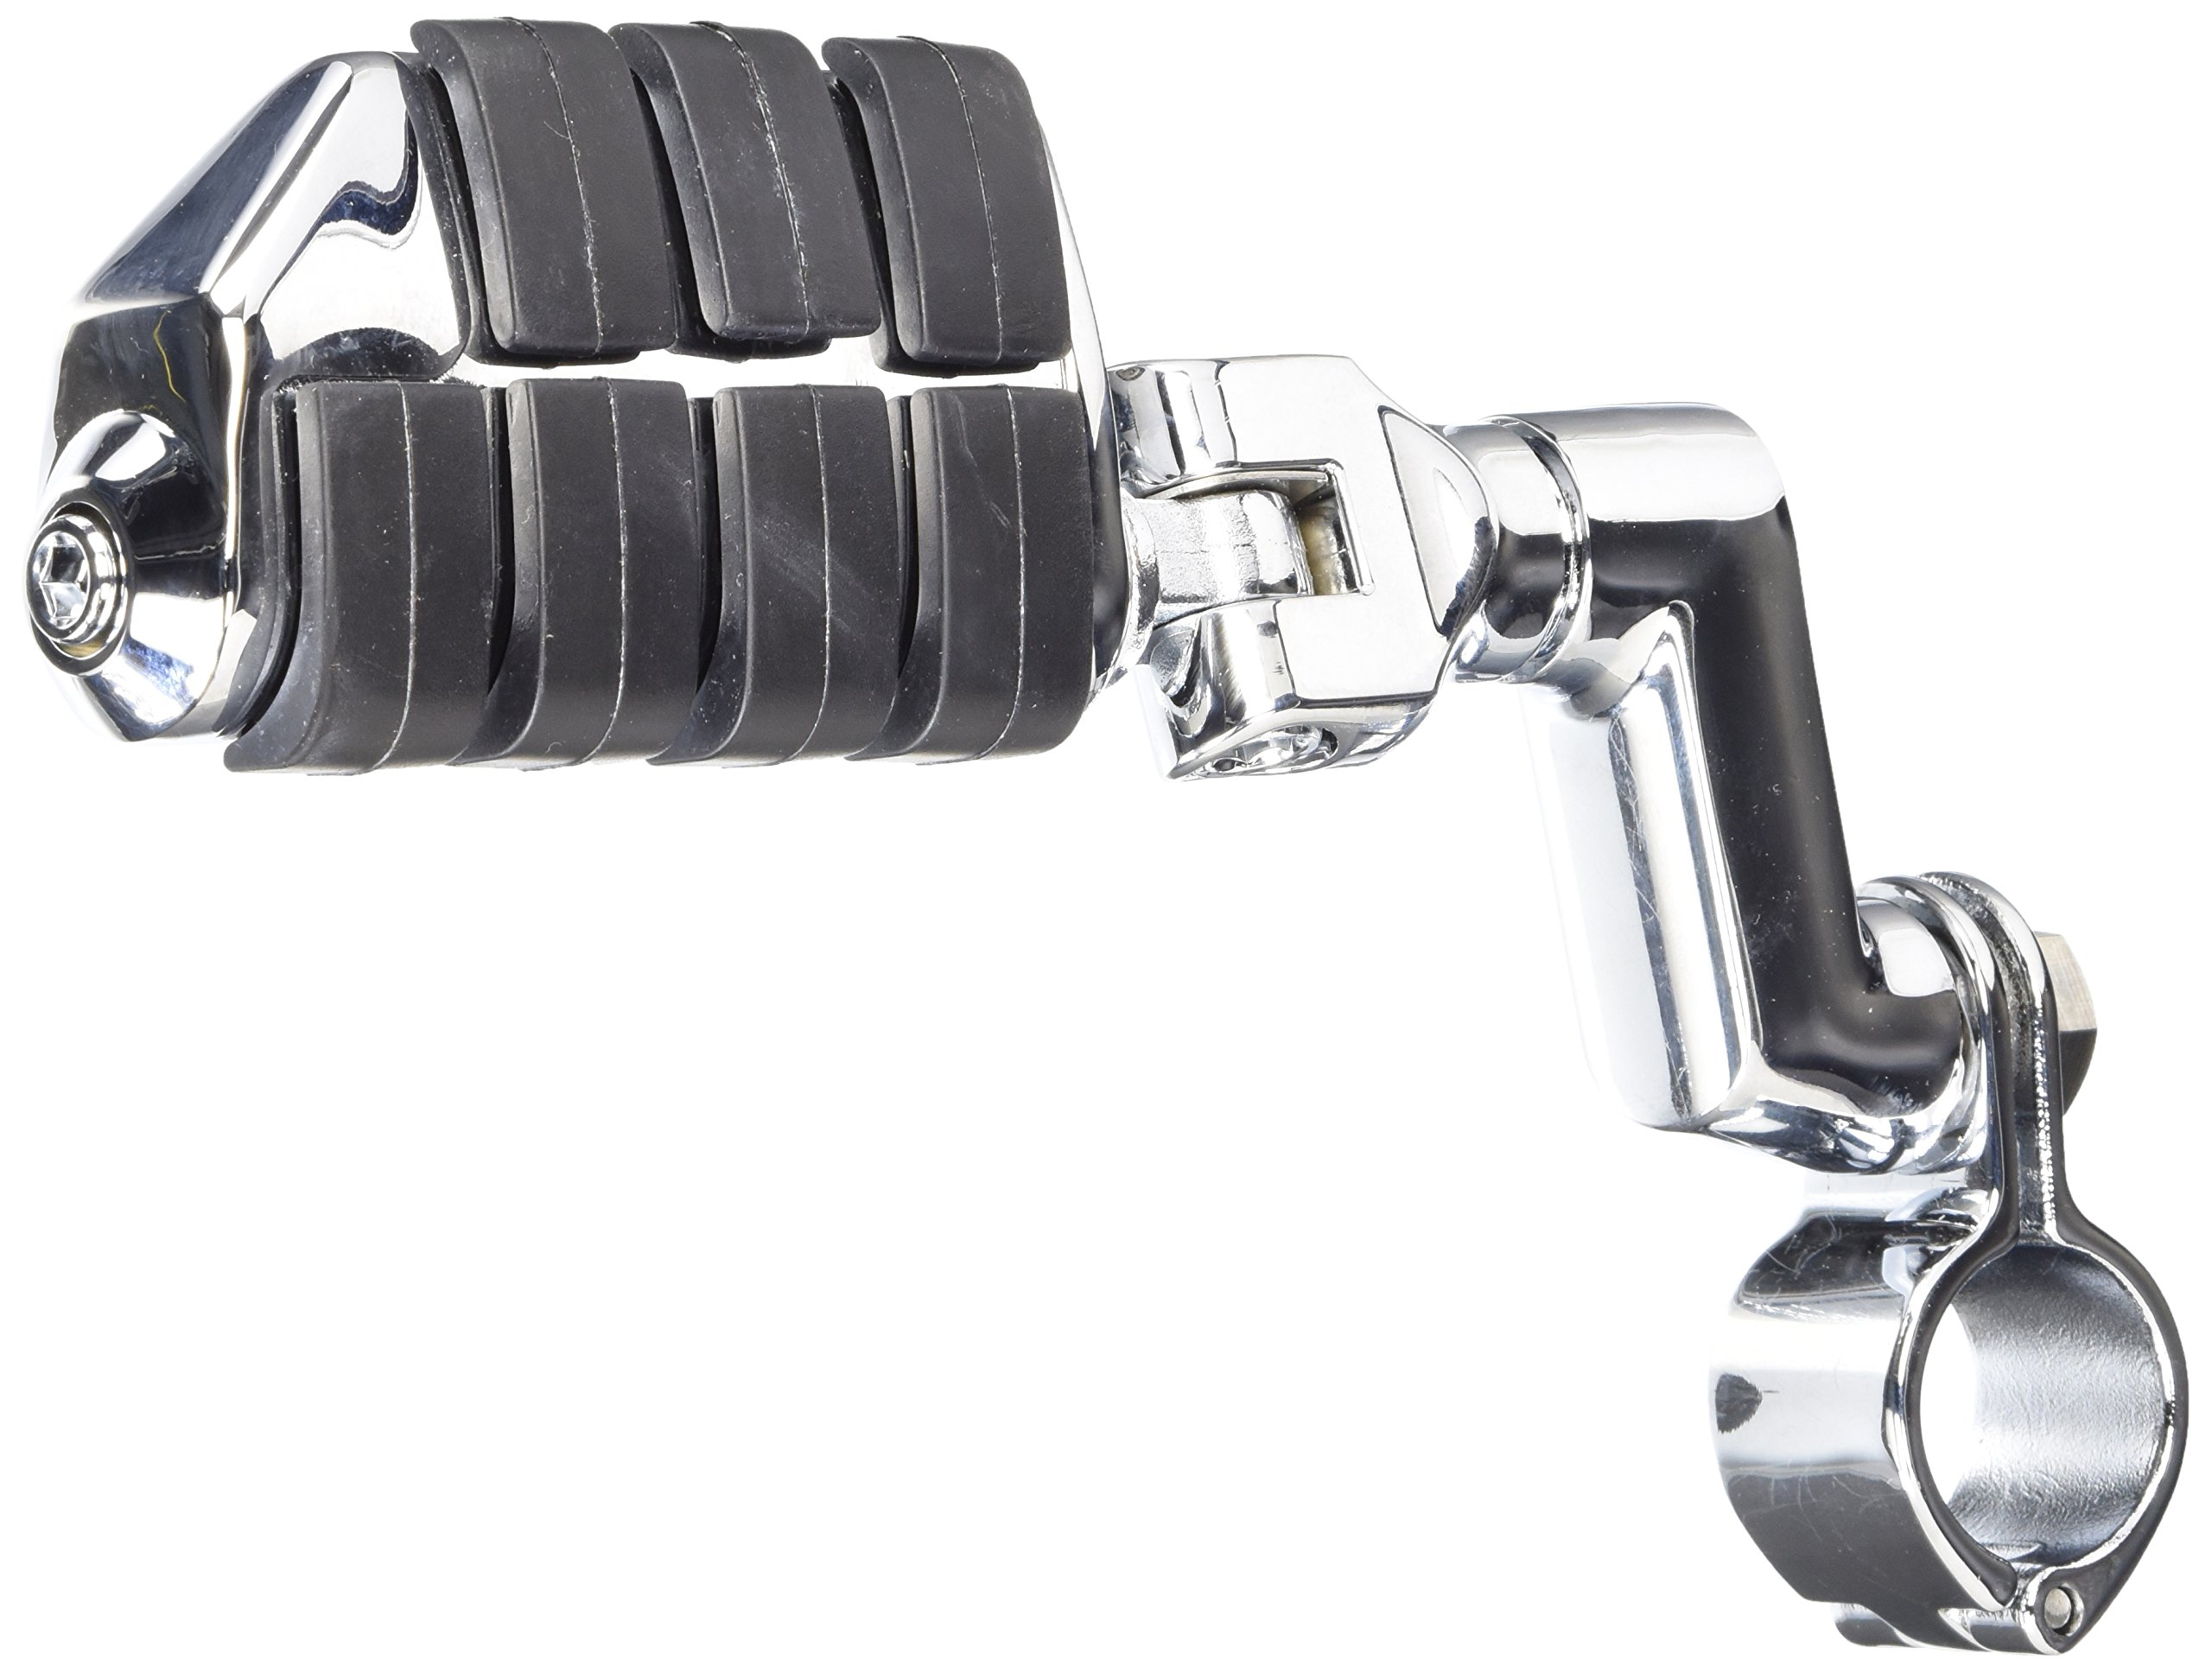 Kuryakyn 7993 ISO Dually Highway Pegs with Offset Mounts and 1-1/4'' Magnum Quick Clamps